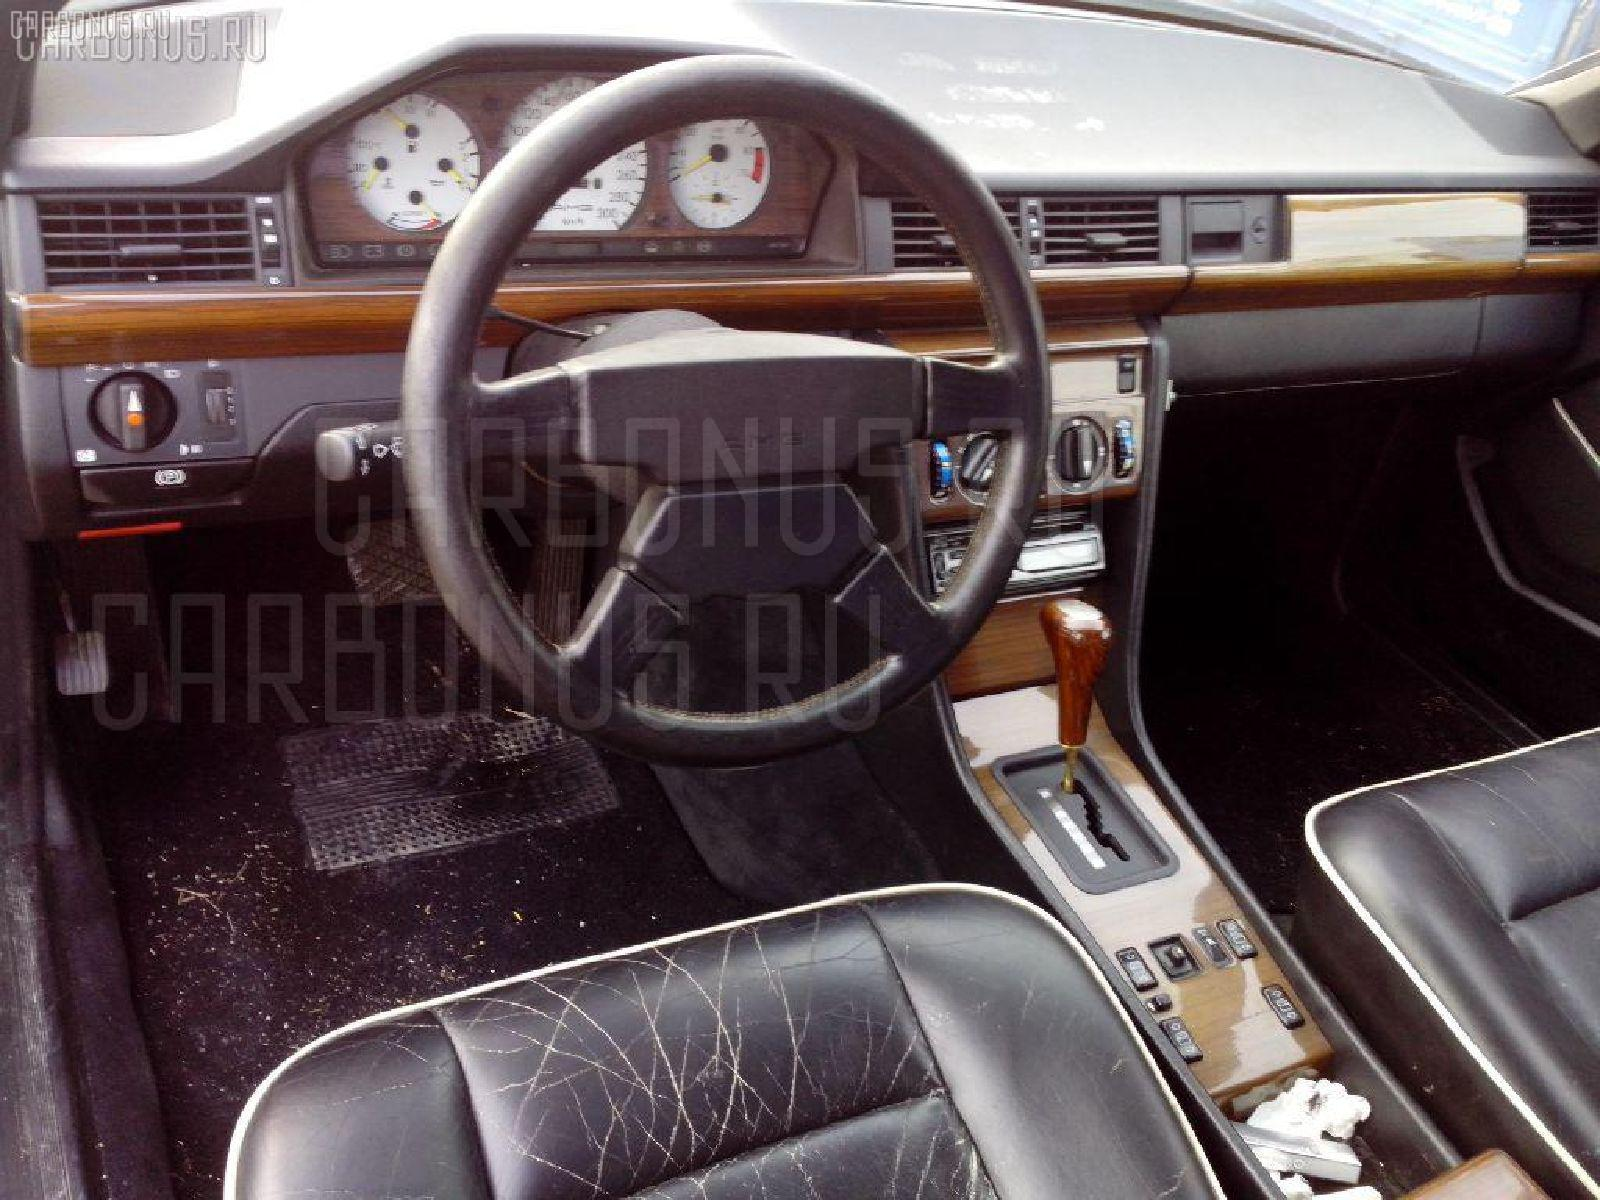 Реле MERCEDES-BENZ COUPE C124.050 103.983 Фото 6